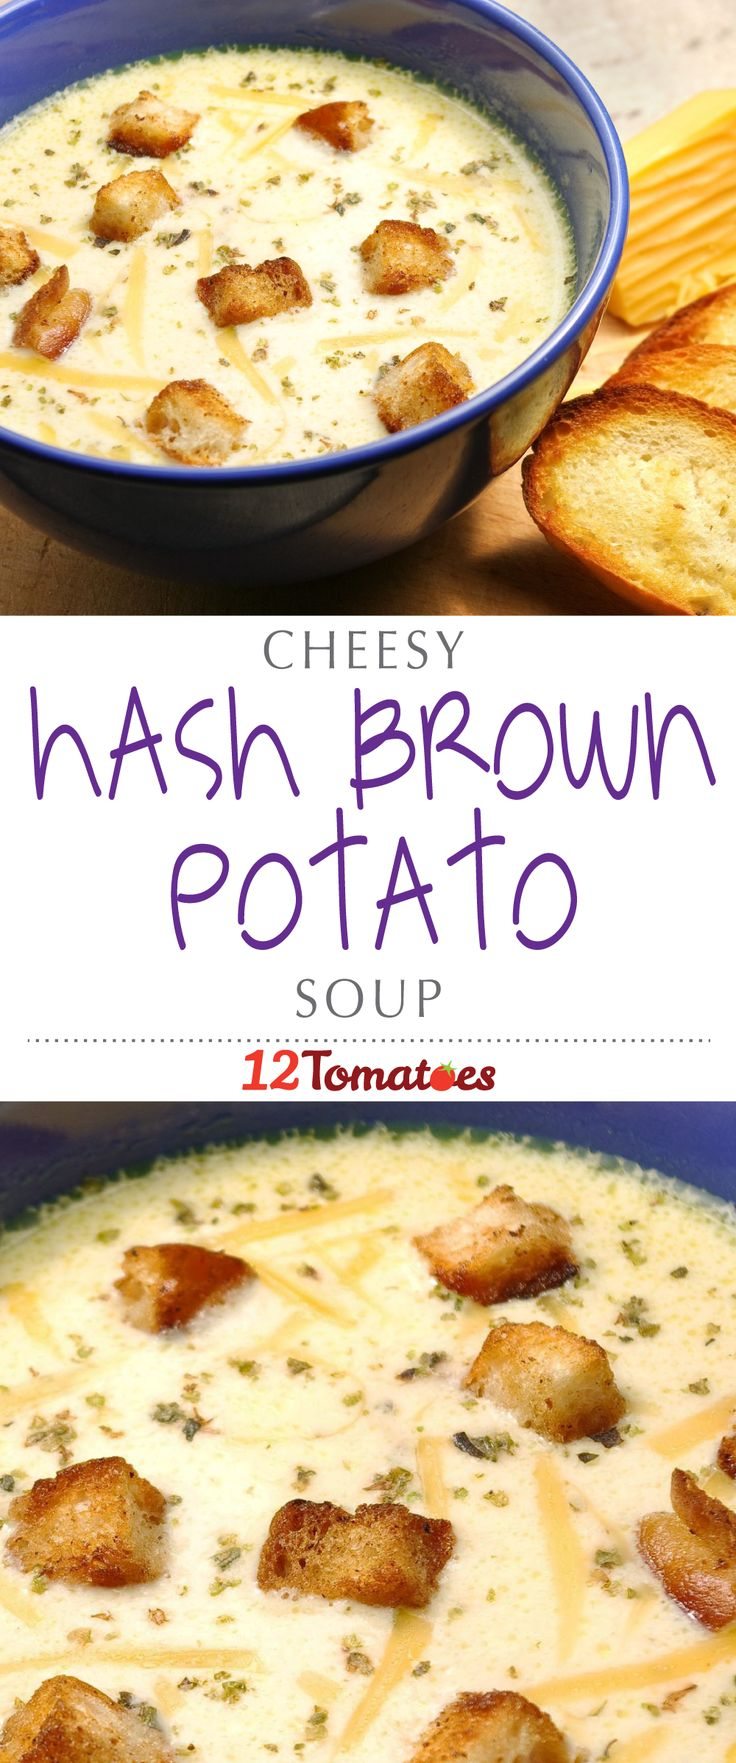 Cheesy Hashbrown Potato Soup | Using store-bought hash browns (or homemade, if you're really feeling ambitious) and lots and lots of cheese, we end up with a thick soup that warms us up and gets us excited for cold weather.